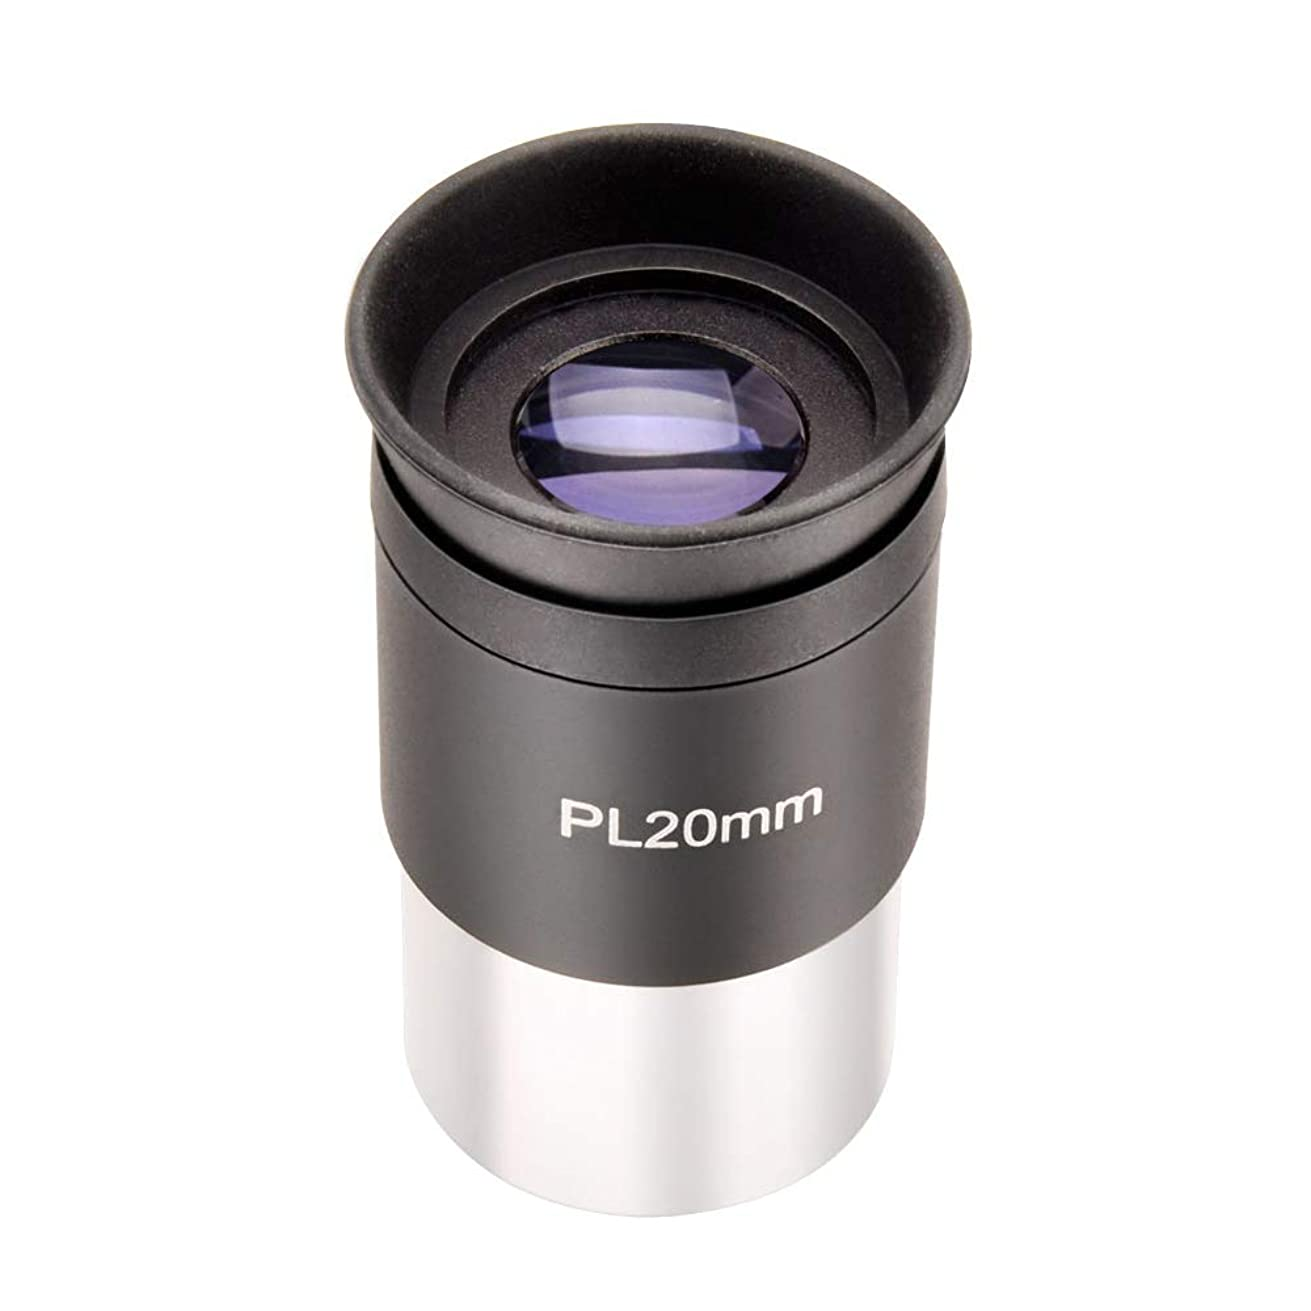 20mm PLossl Telescope Eyepiece 52 Degree FOV Fully Coated- Threaded for Standard 1.25